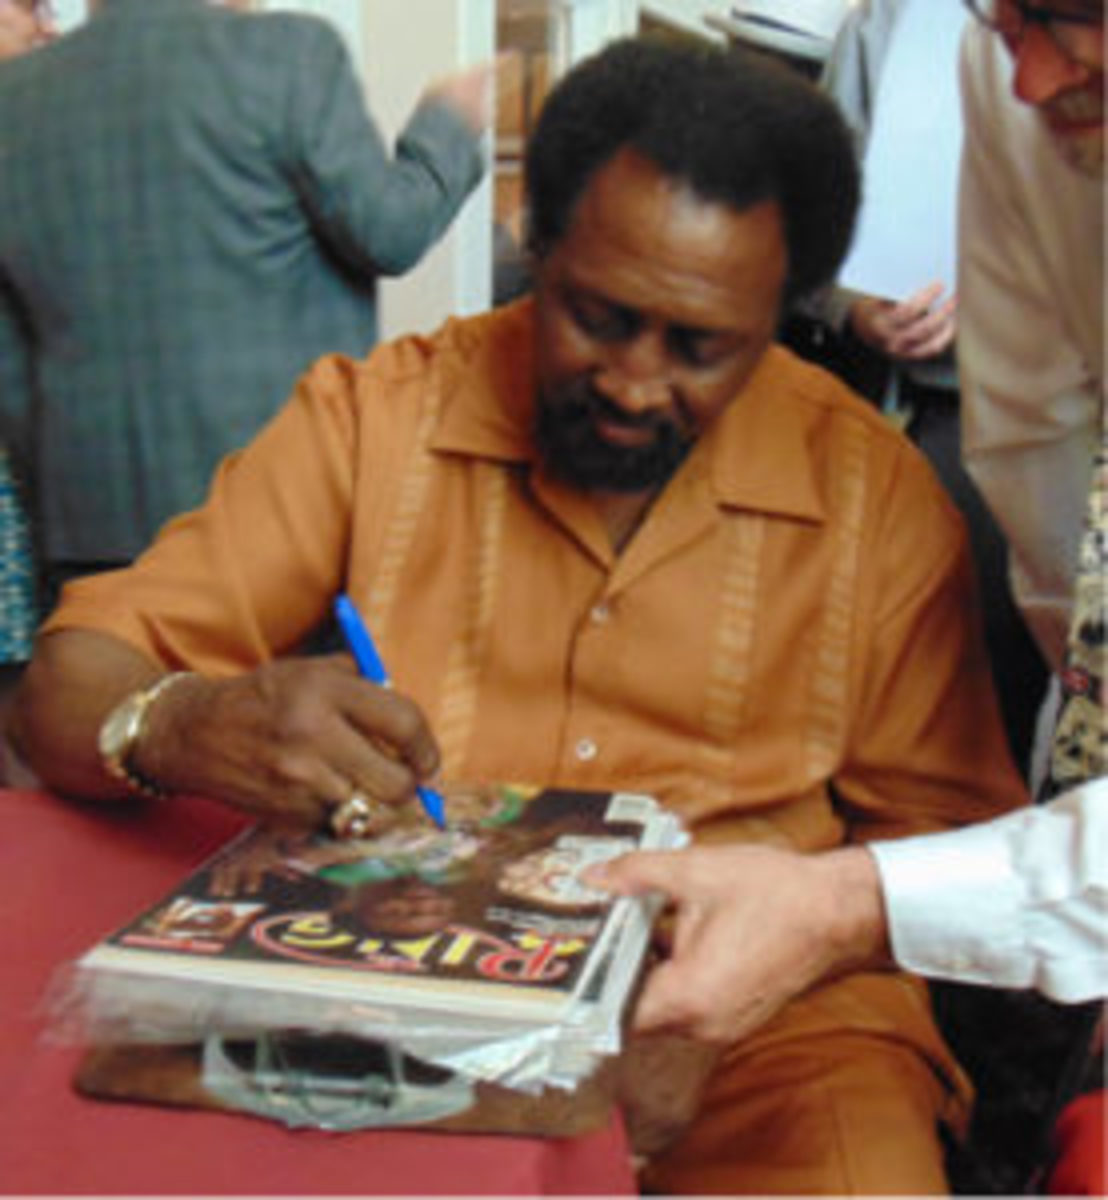 Thomas Hearns signs for a fan at the International Boxing Hall of Fame Cocktail Reception (Robert Kunz photo)